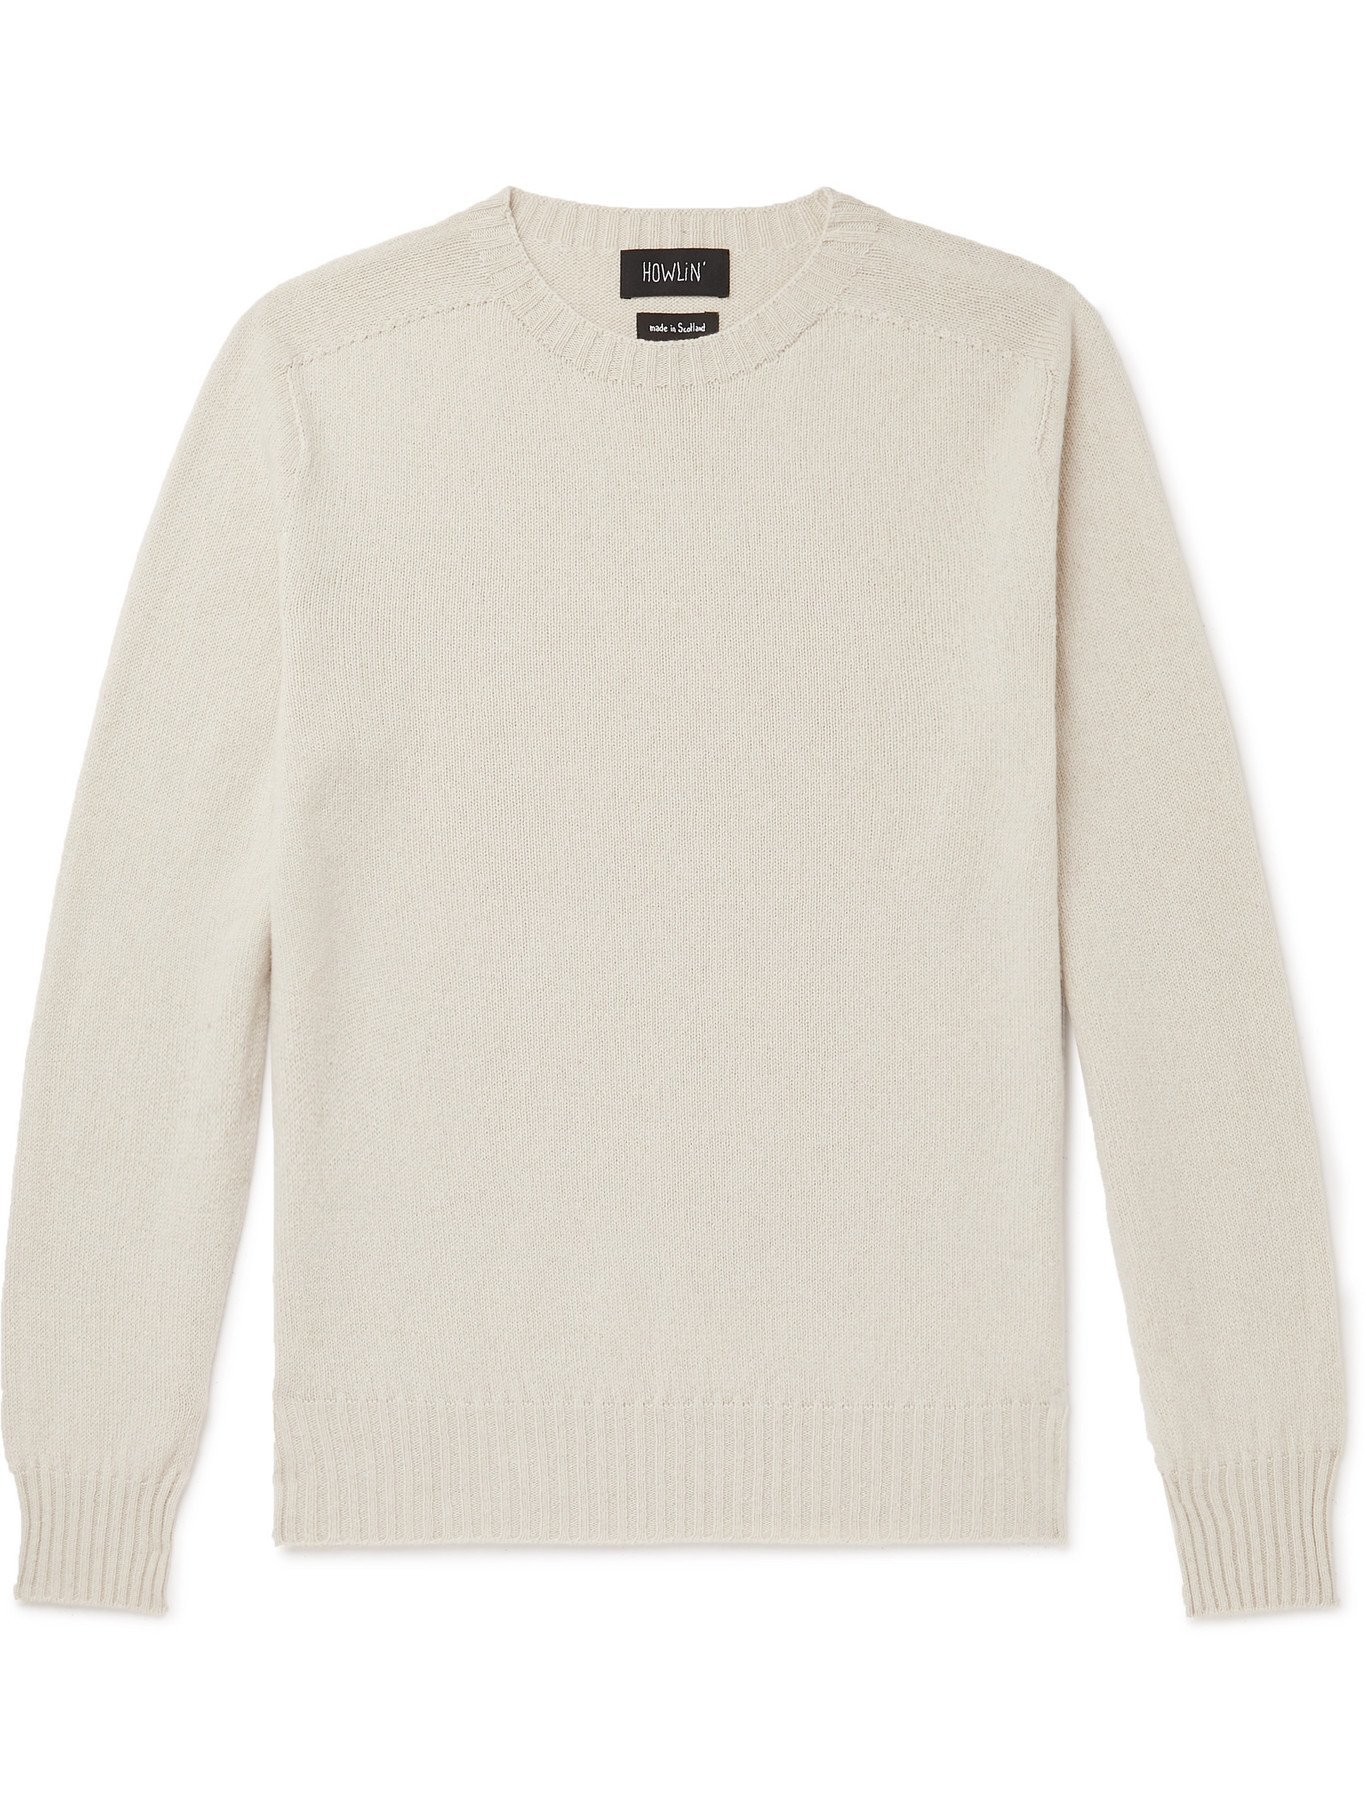 Photo: HOWLIN' - Wool and Cotton-Blend Sweater - Neutrals - S